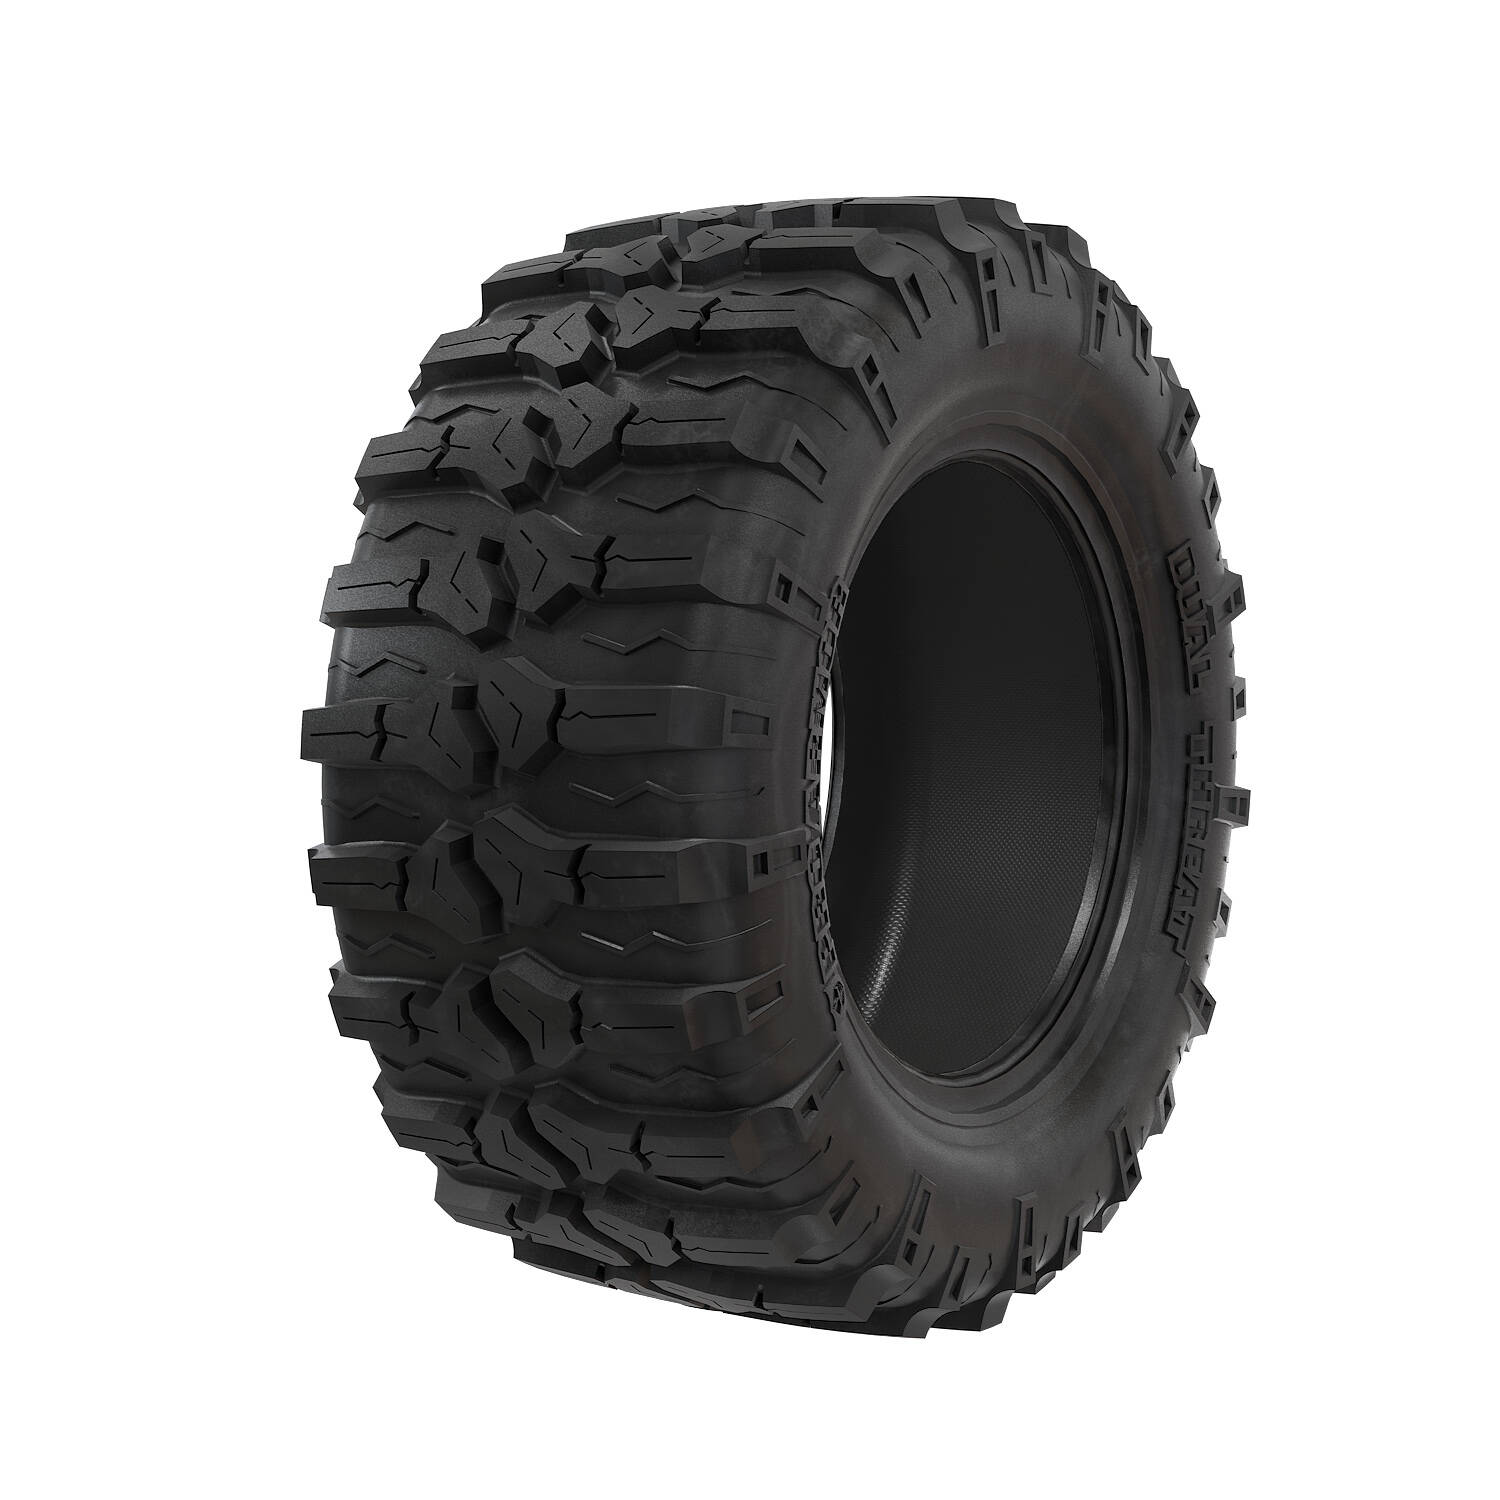 Pro Armor® Tire: Dual-Threat - Rear